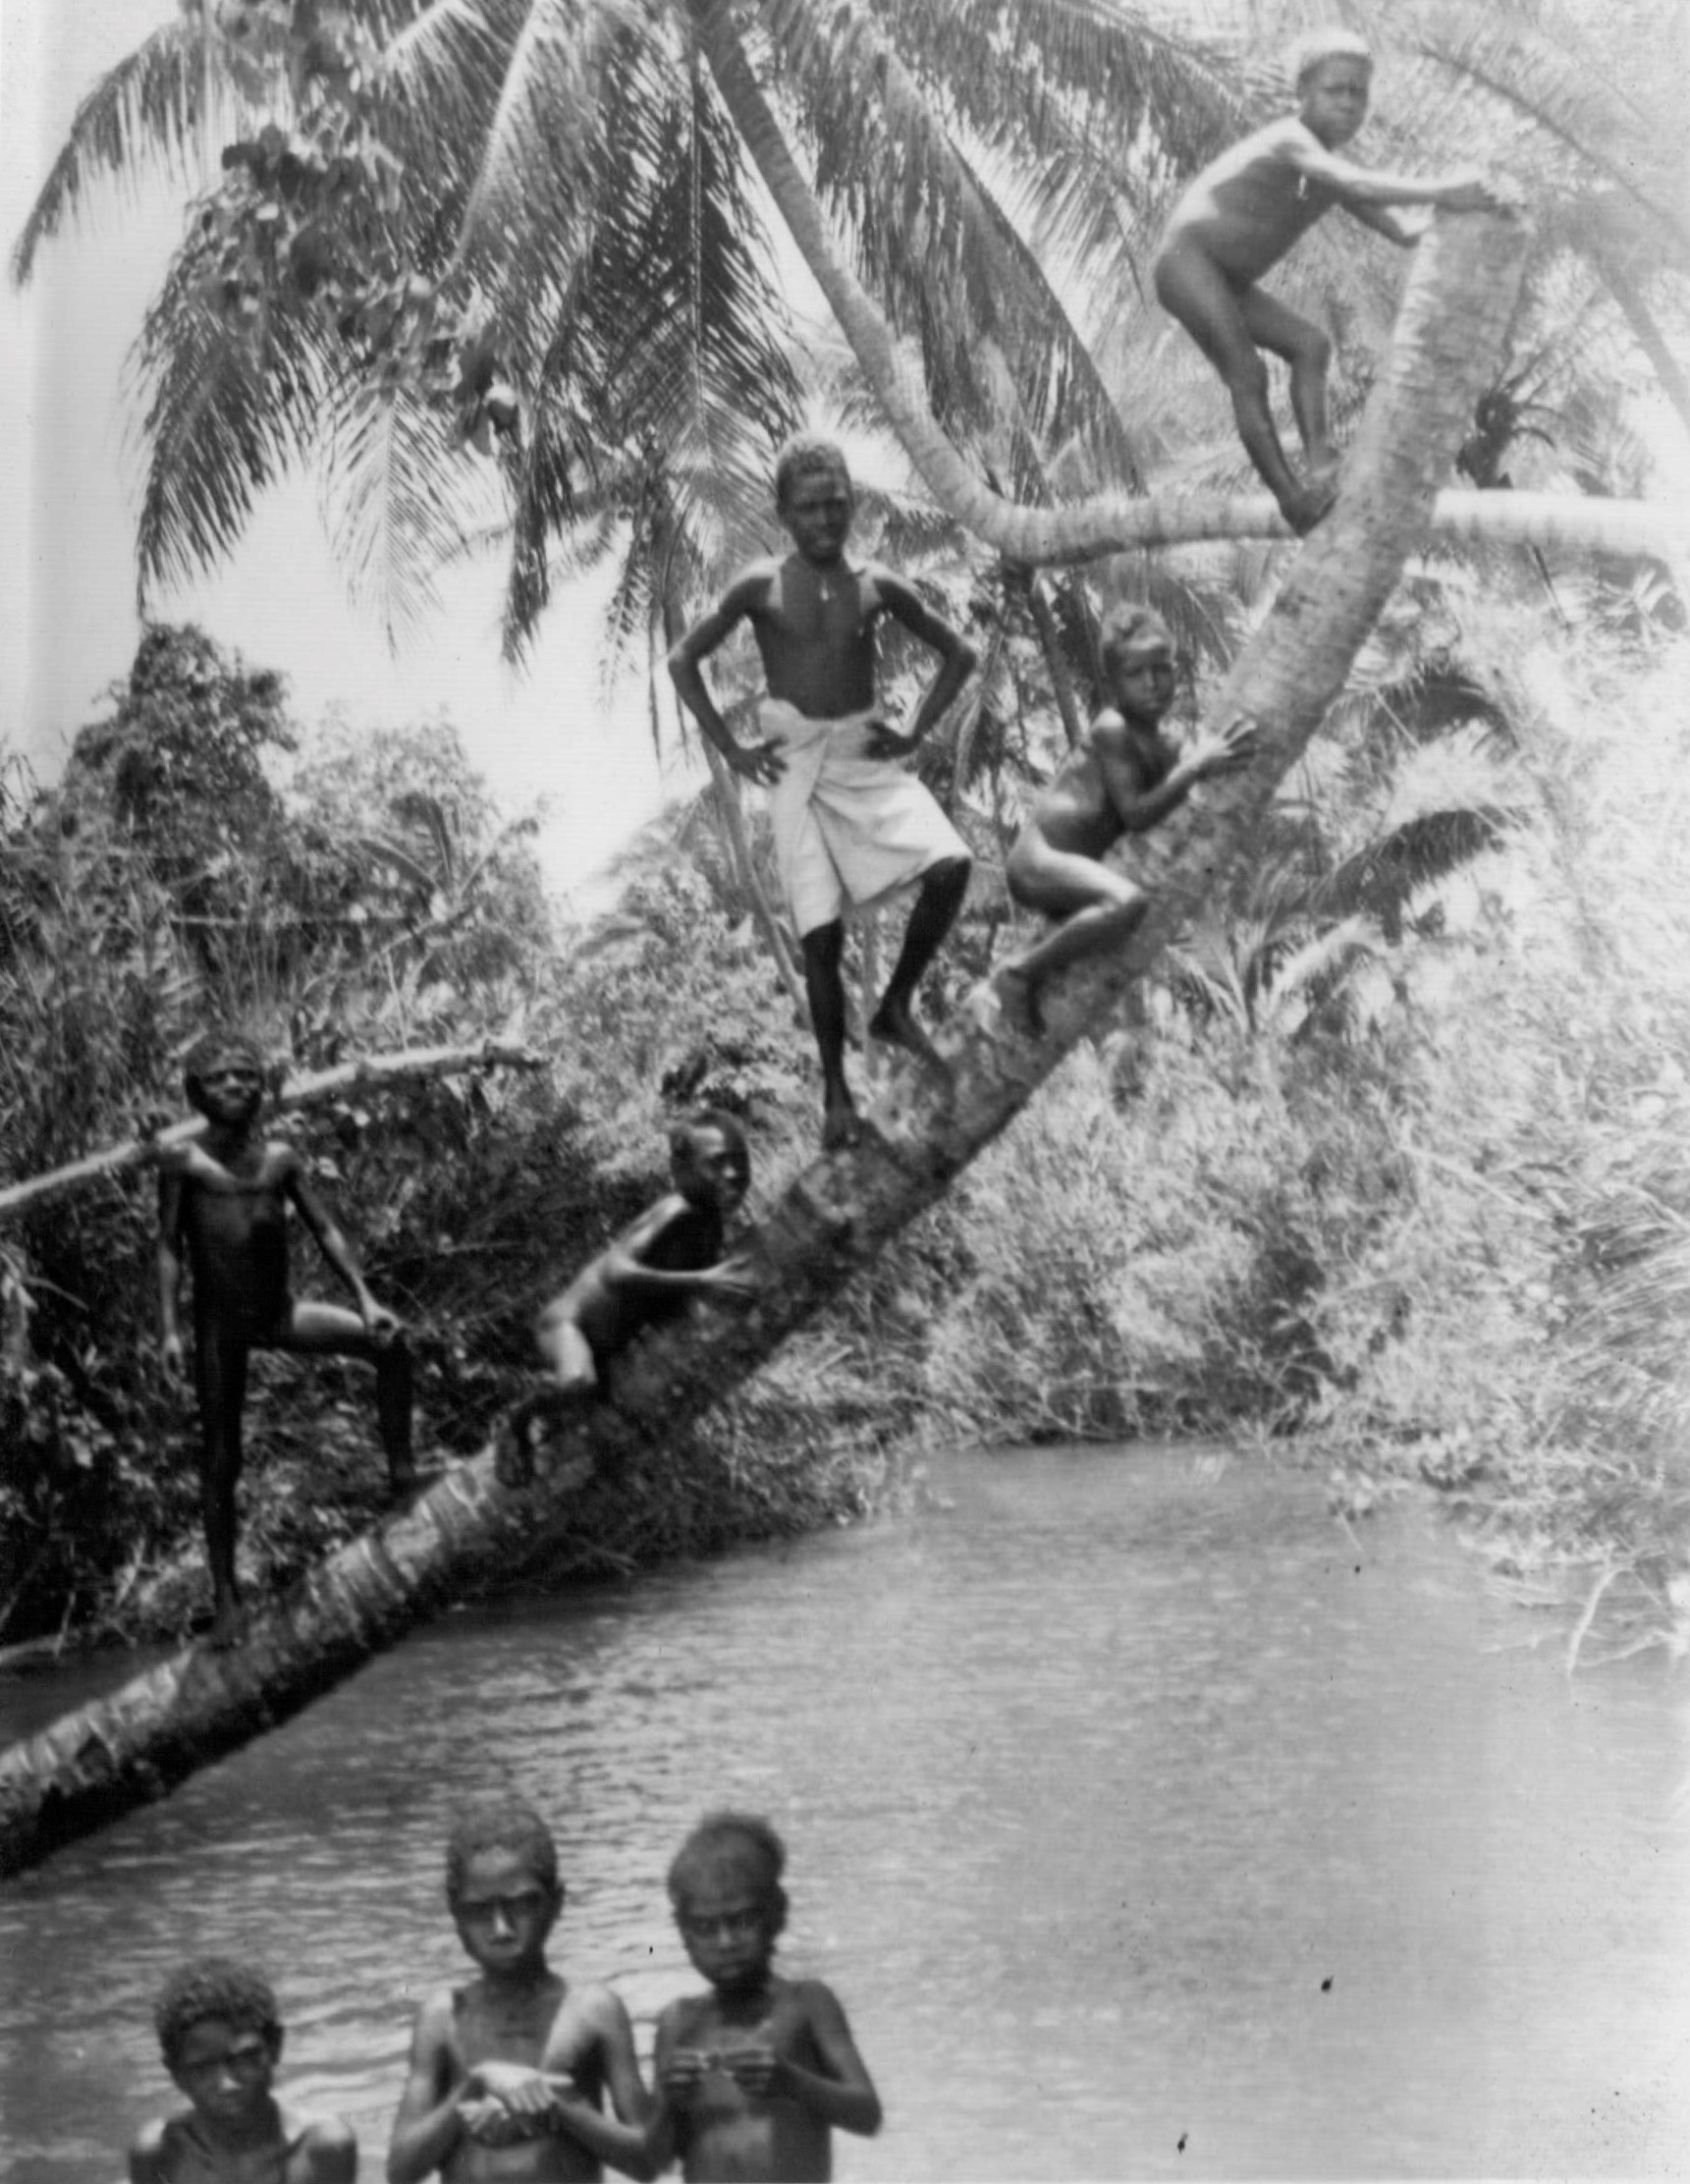 He documented what he saw in the islands as the US advanced. I believe his job was to set up communications on the islands.He was at Guadalcanal, but I'm not sure where he took this.